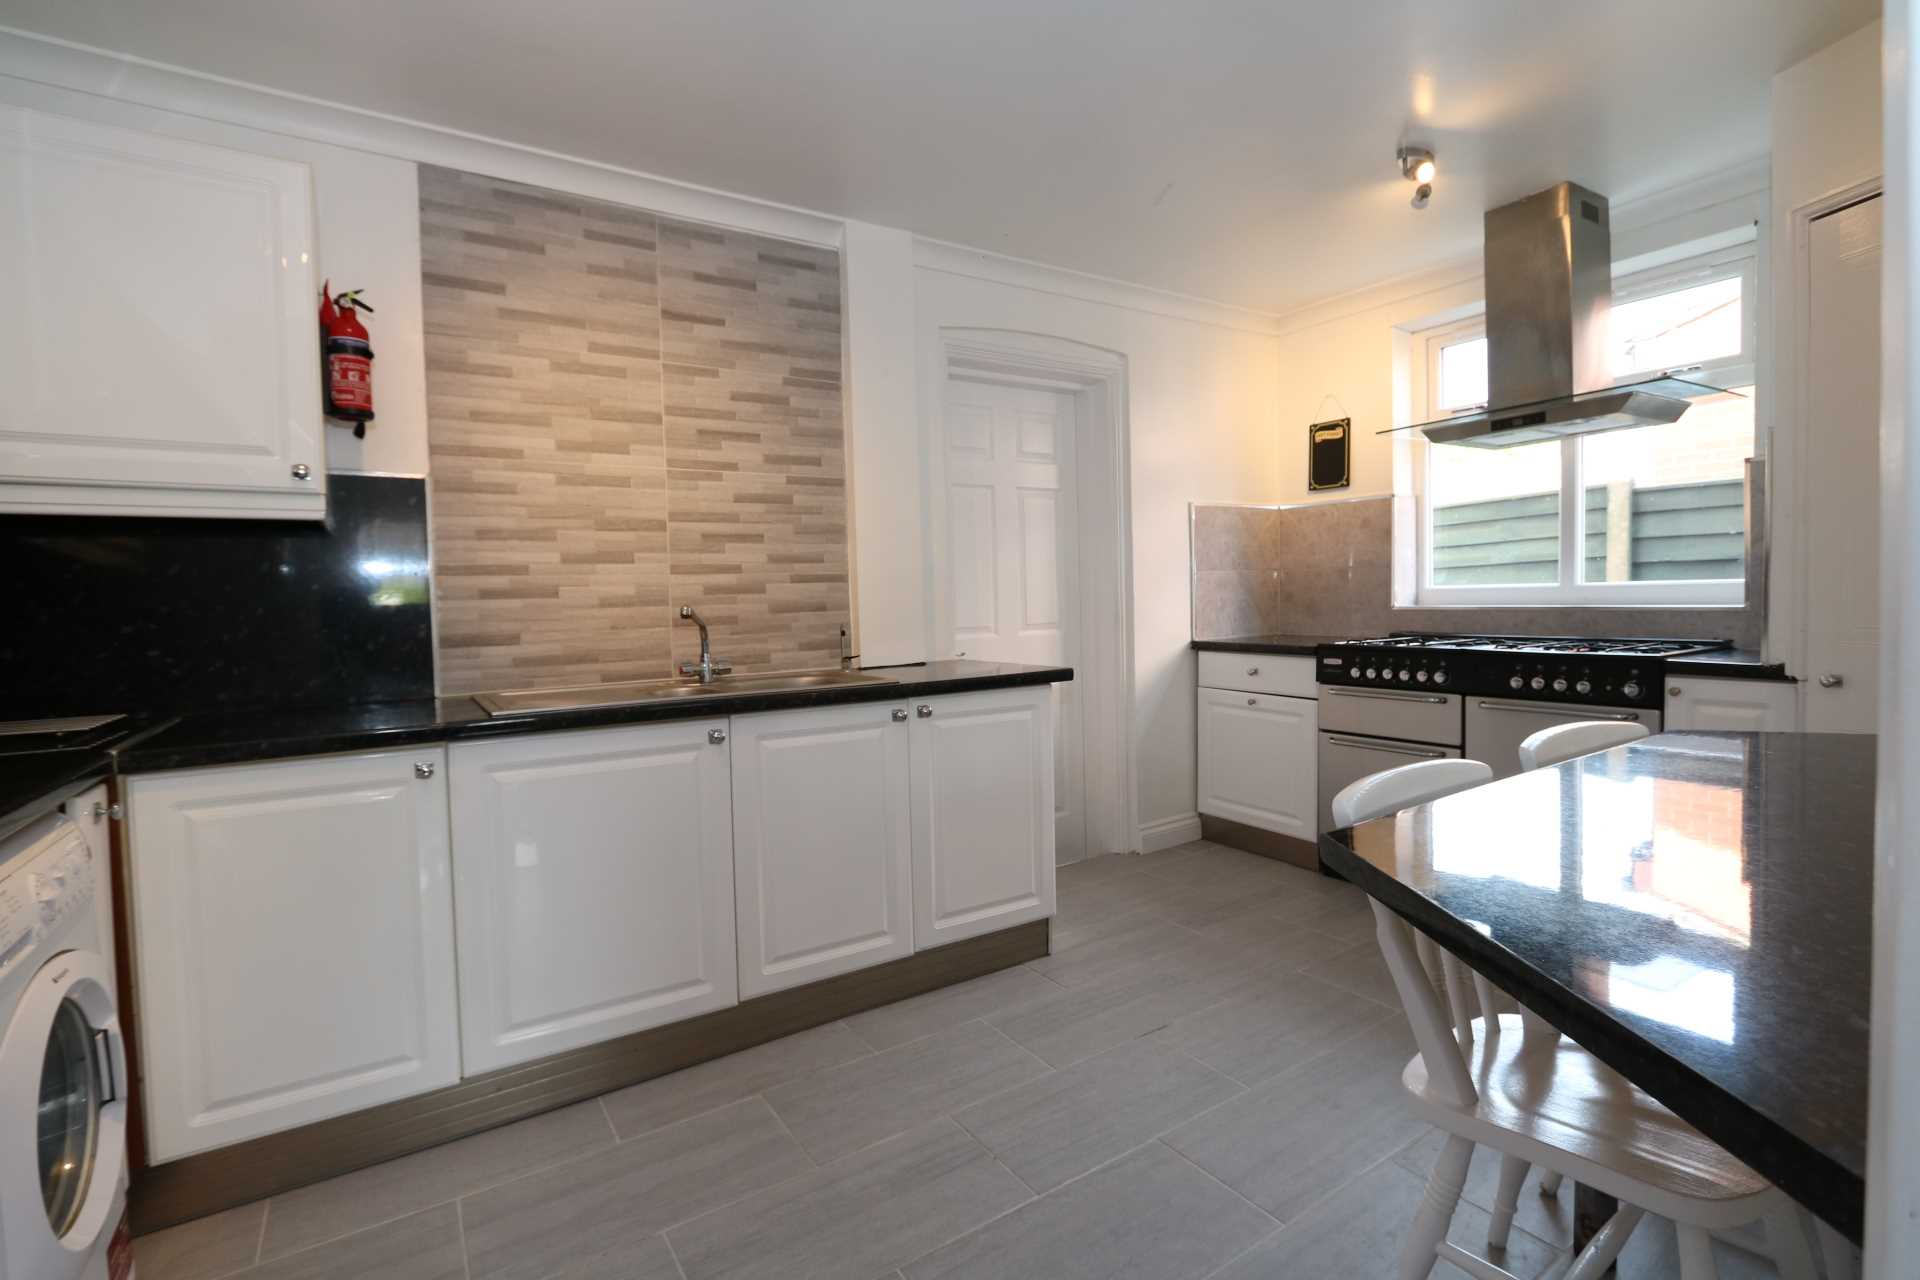 Cornwall Road - 4 bedroom student home fully furnished, WIFI & bills included - NO FEES, Image 3